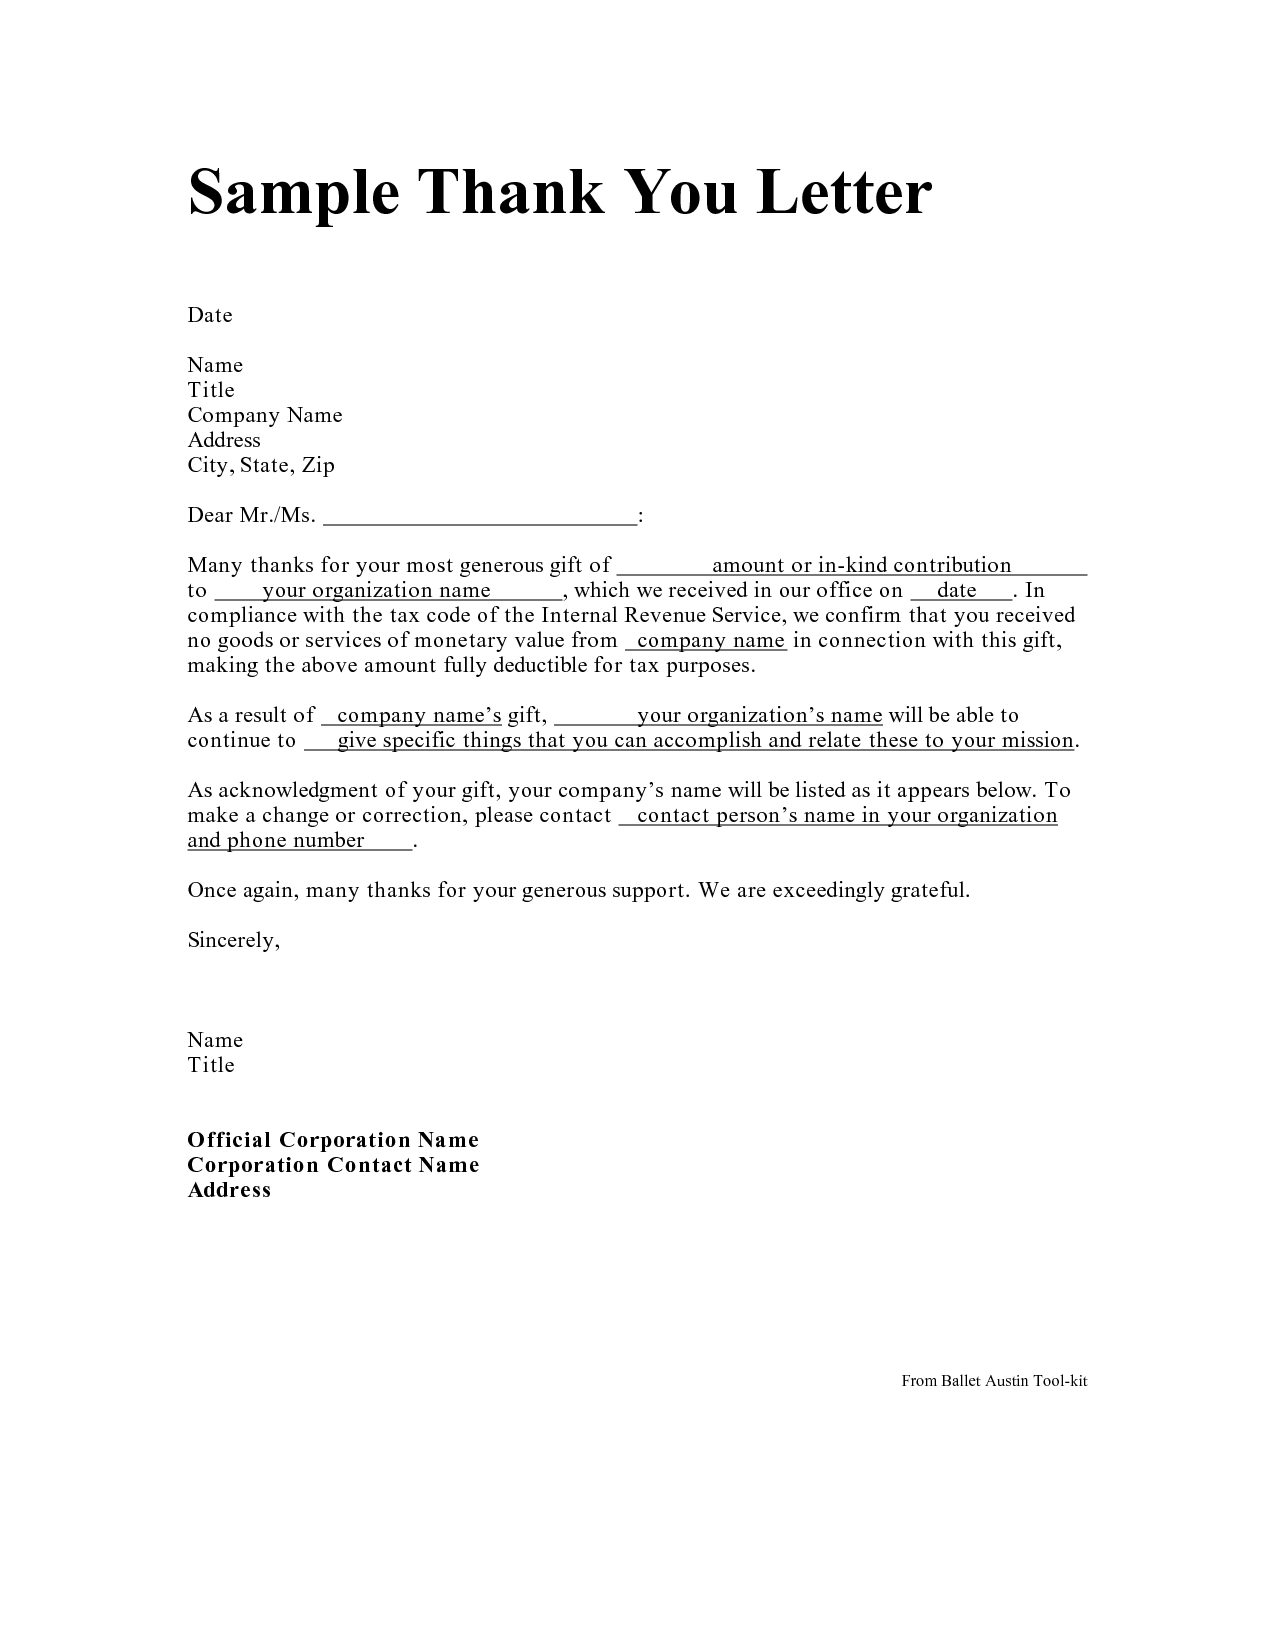 professional thank you letter Onwe.bioinnovate.co